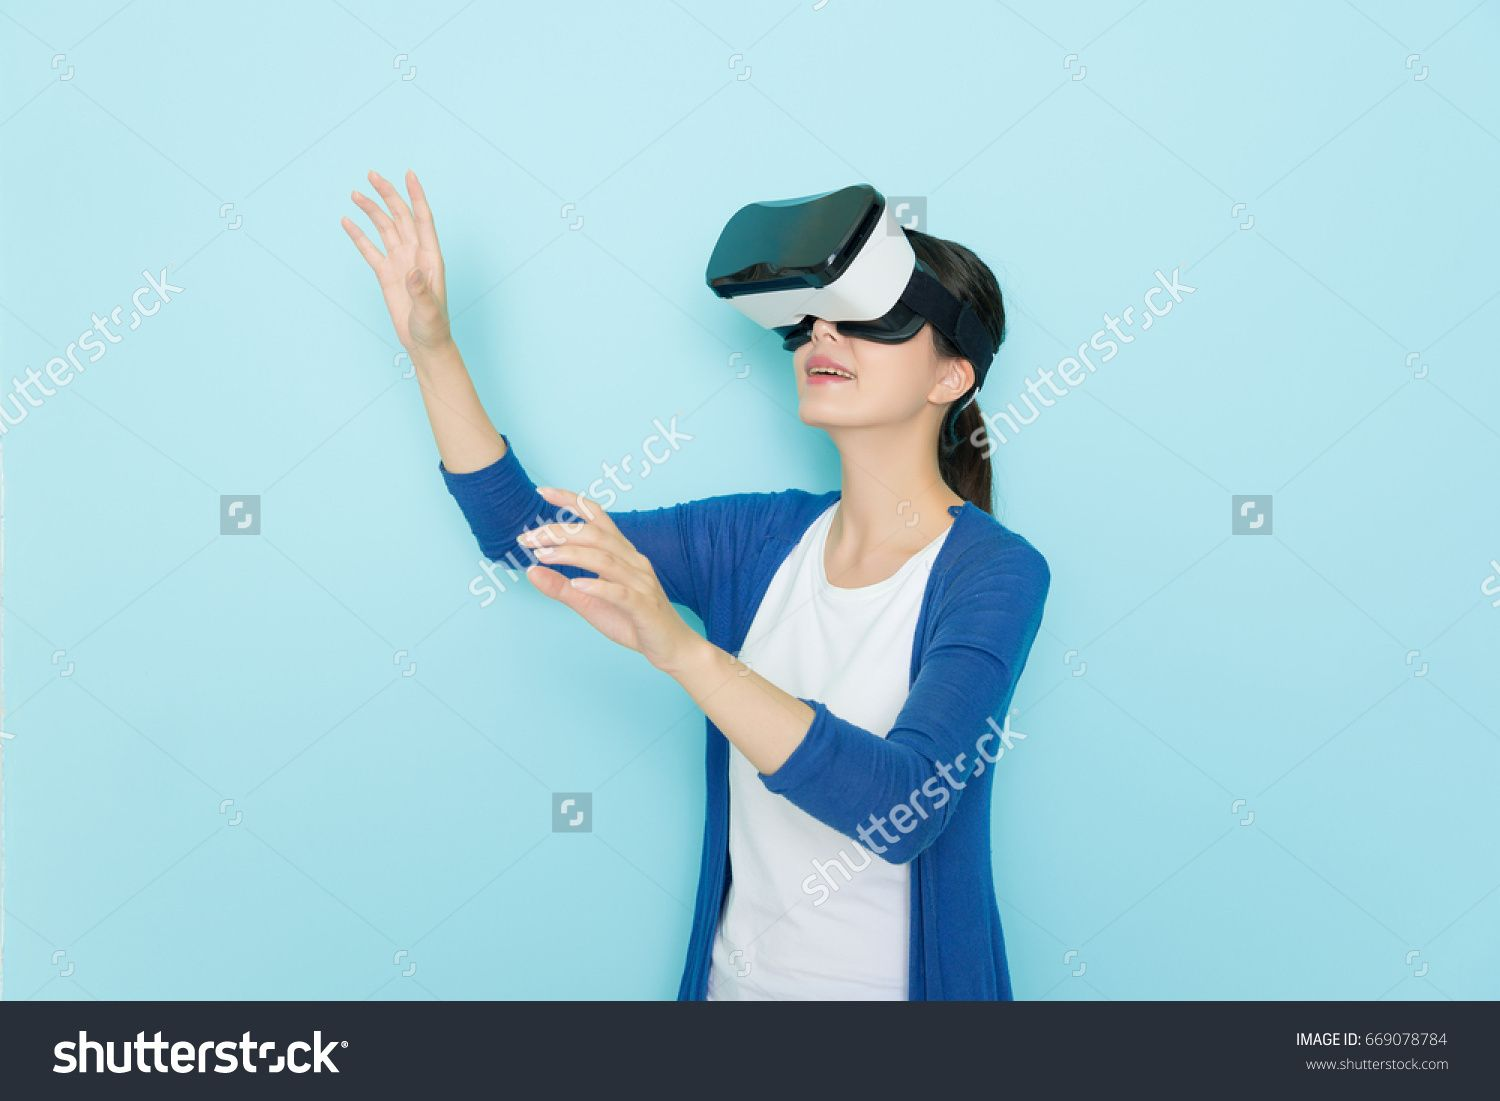 6a06c916eb smiling young woman in virtual reality glasses standing in blue wall  background and wearing lifestyle clothing using hands playing 3D online  game.